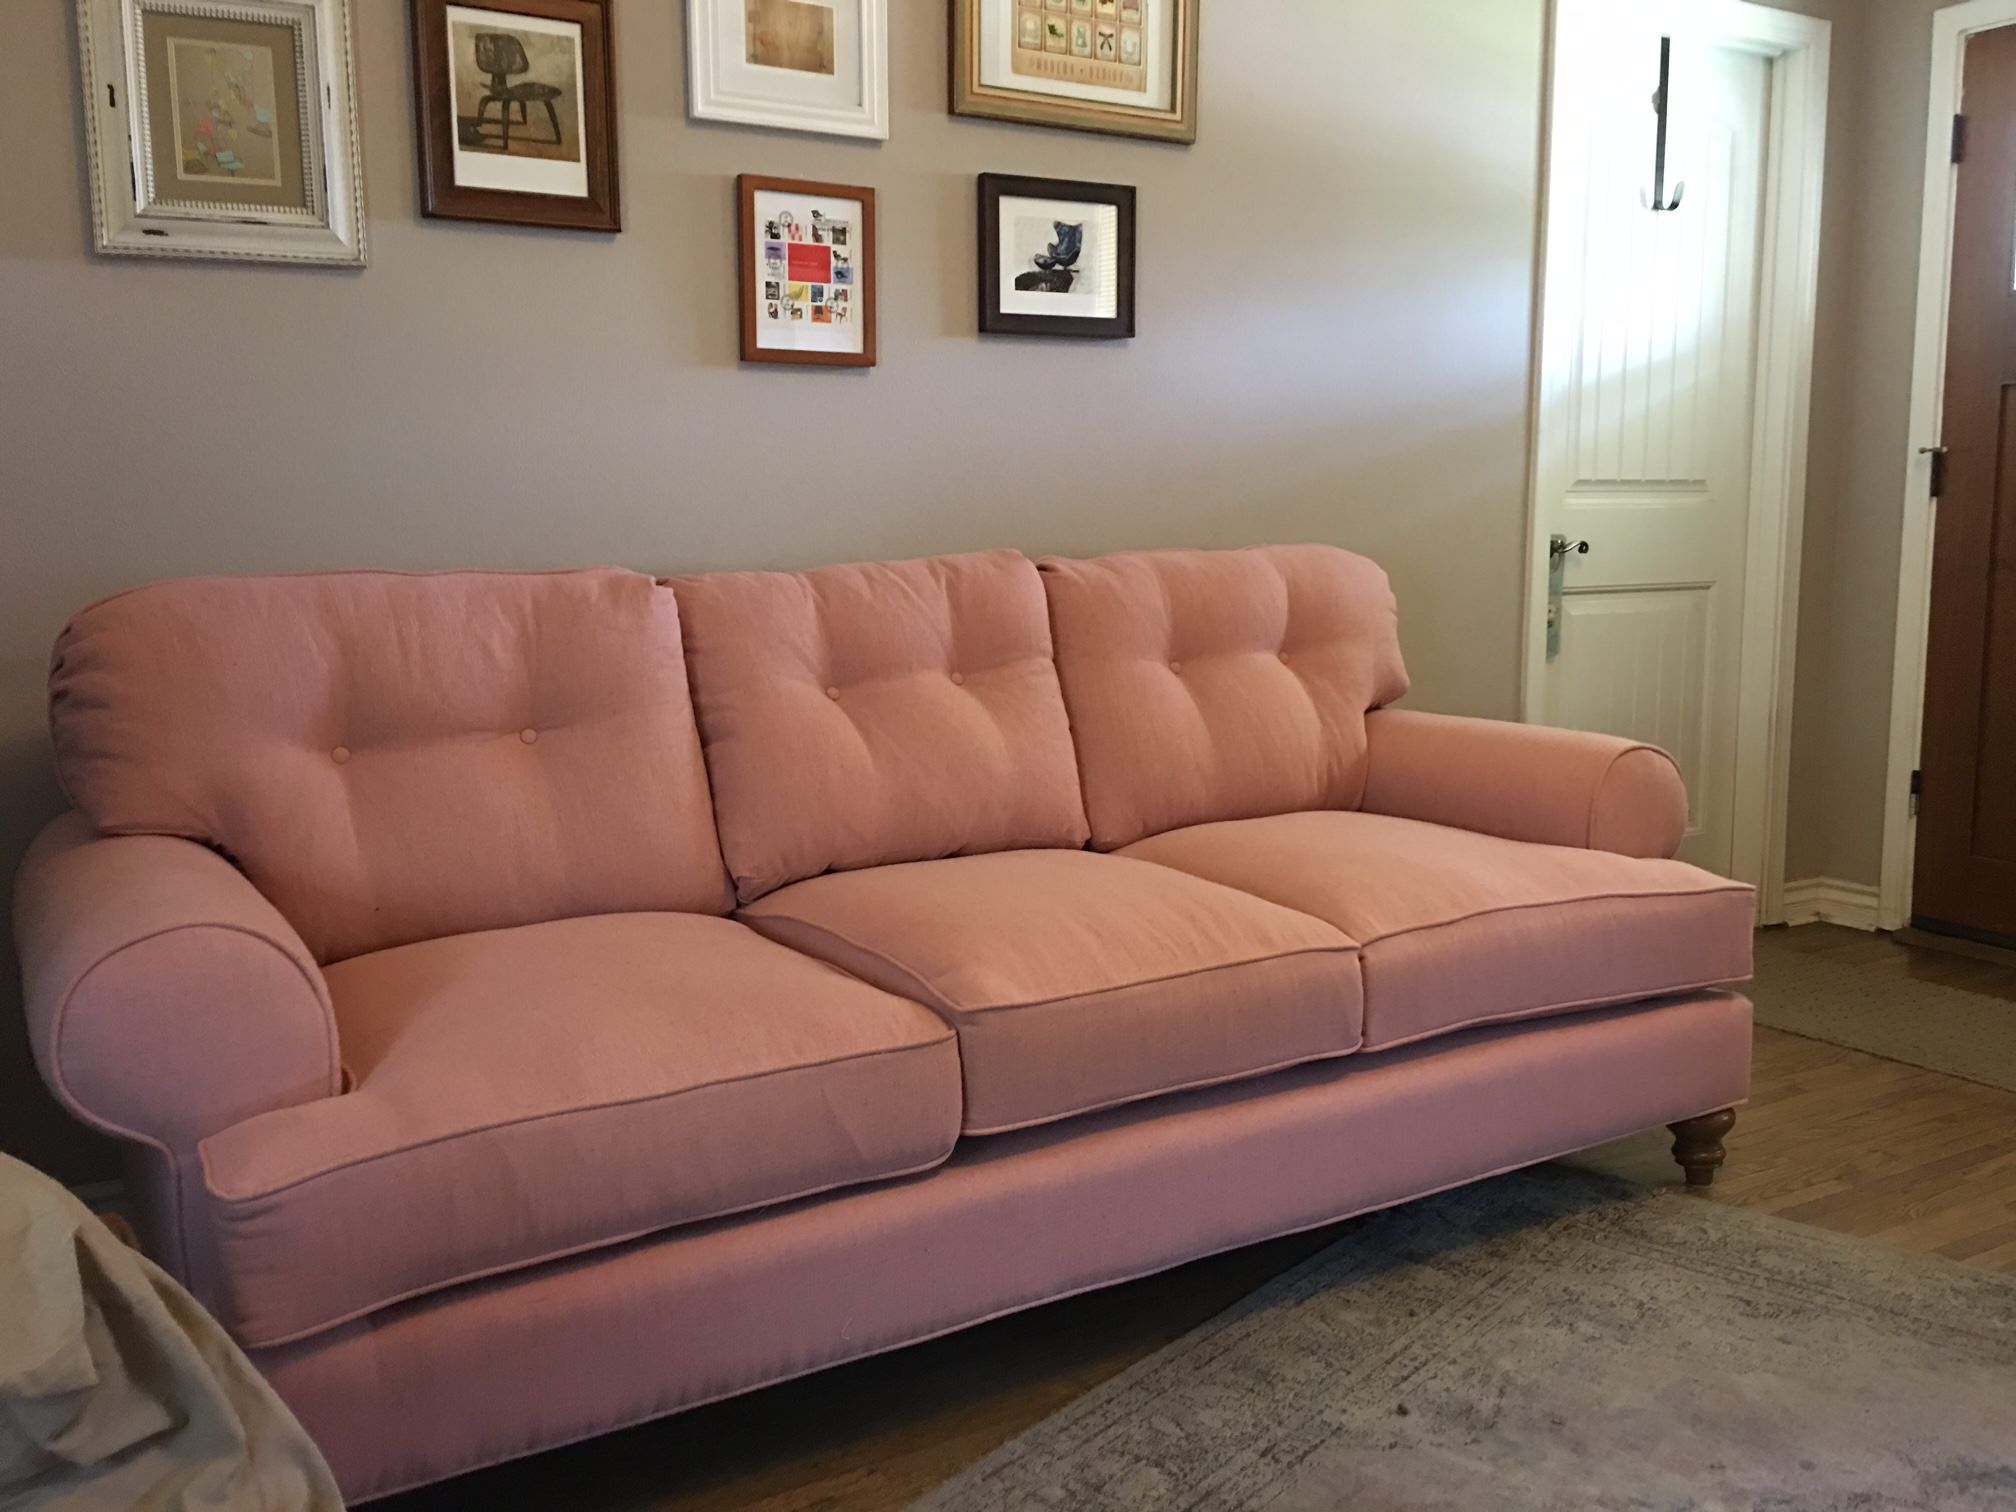 Bentley Rolled Arm Custom Sofa In Traditional Furniture Collection At The Sofa Company Http Www Thesofaco Com Custom Furn Traditional Sofa Sofa Company Sofa